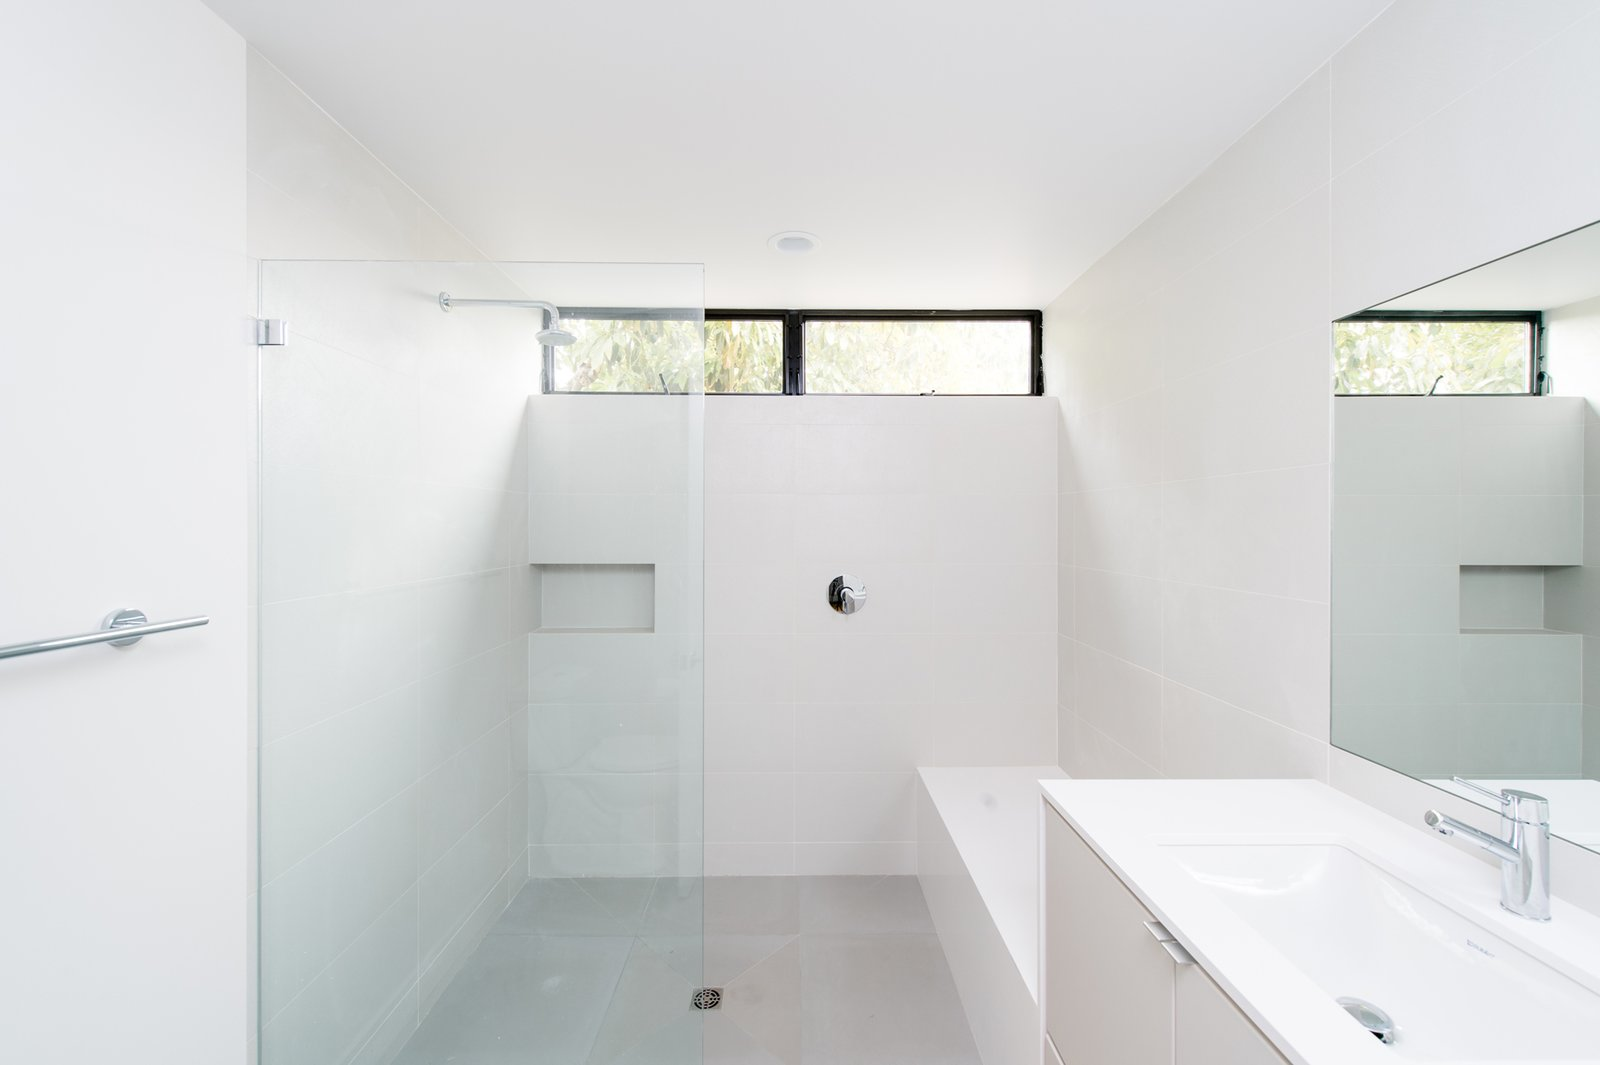 A minimalist secondary bath features a quartz waterfall bench and oversized custom shower. Tagged: Bath Room, Engineered Quartz Counter, Porcelain Tile Floor, Undermount Sink, Open Shower, Ceiling Lighting, and Ceramic Tile Wall.  Villa Park Modern by MYD studio, inc.